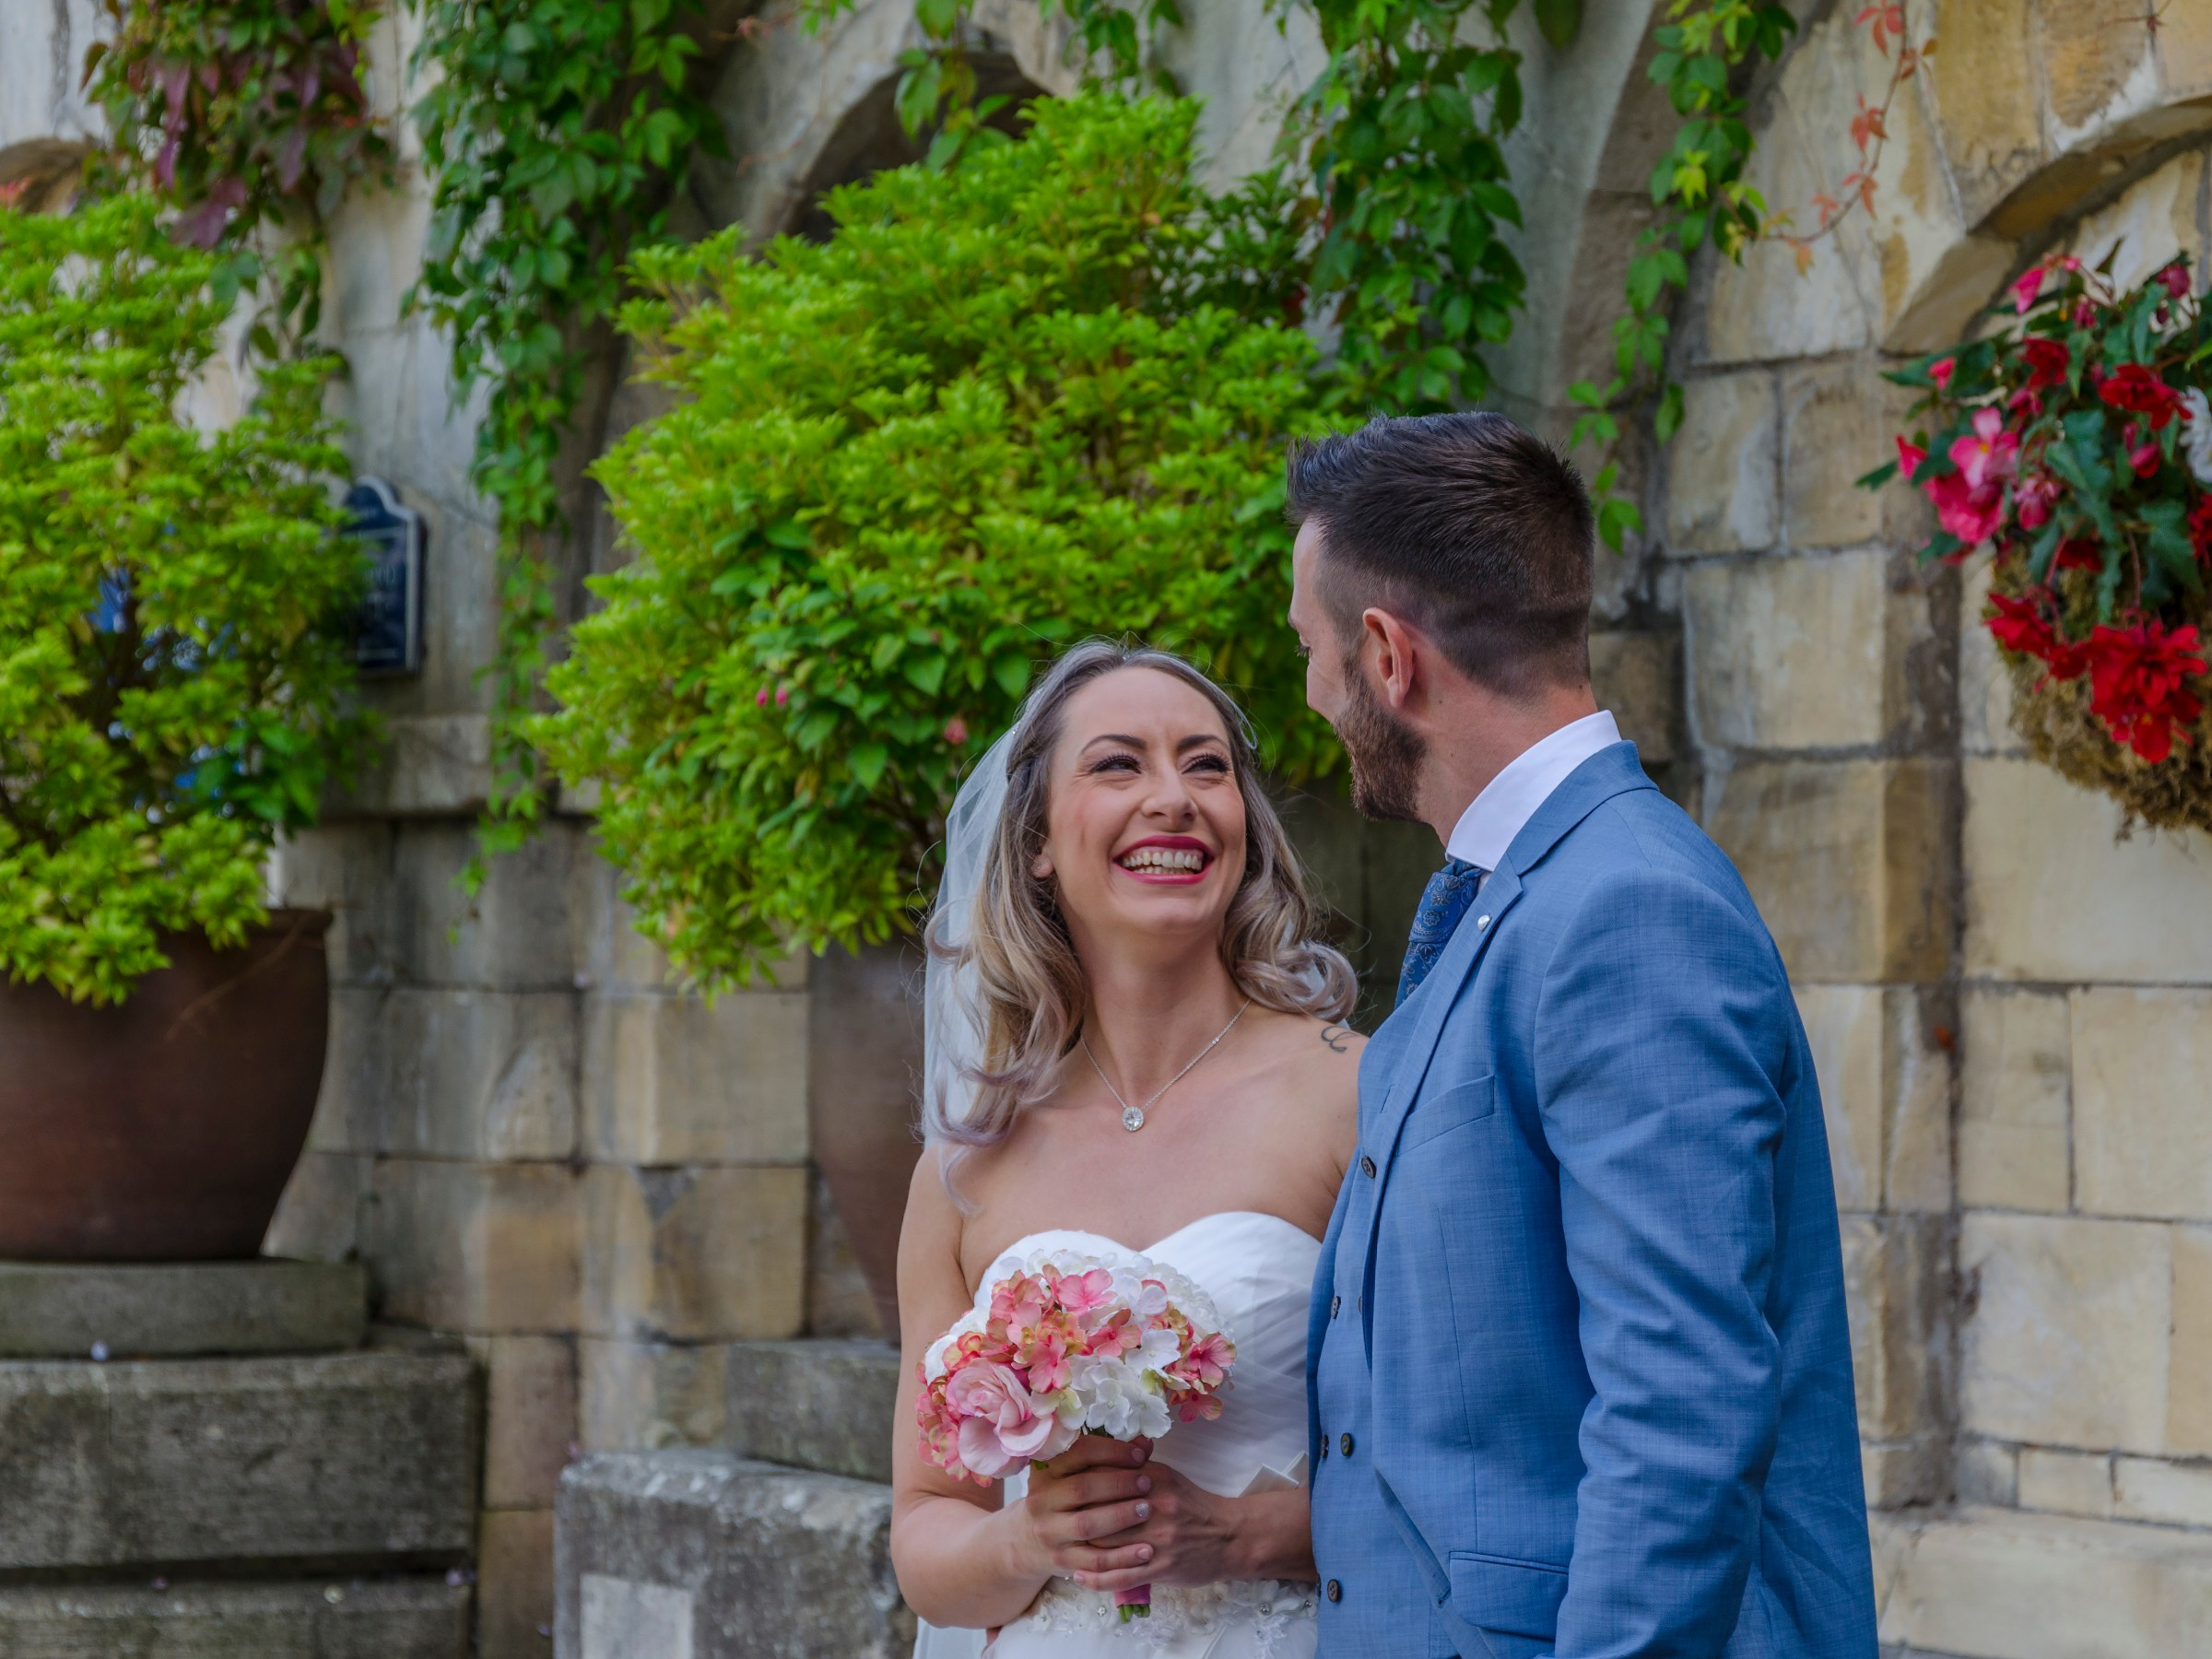 Cumbria and Lake district wedding photography photo by Radiance Photography